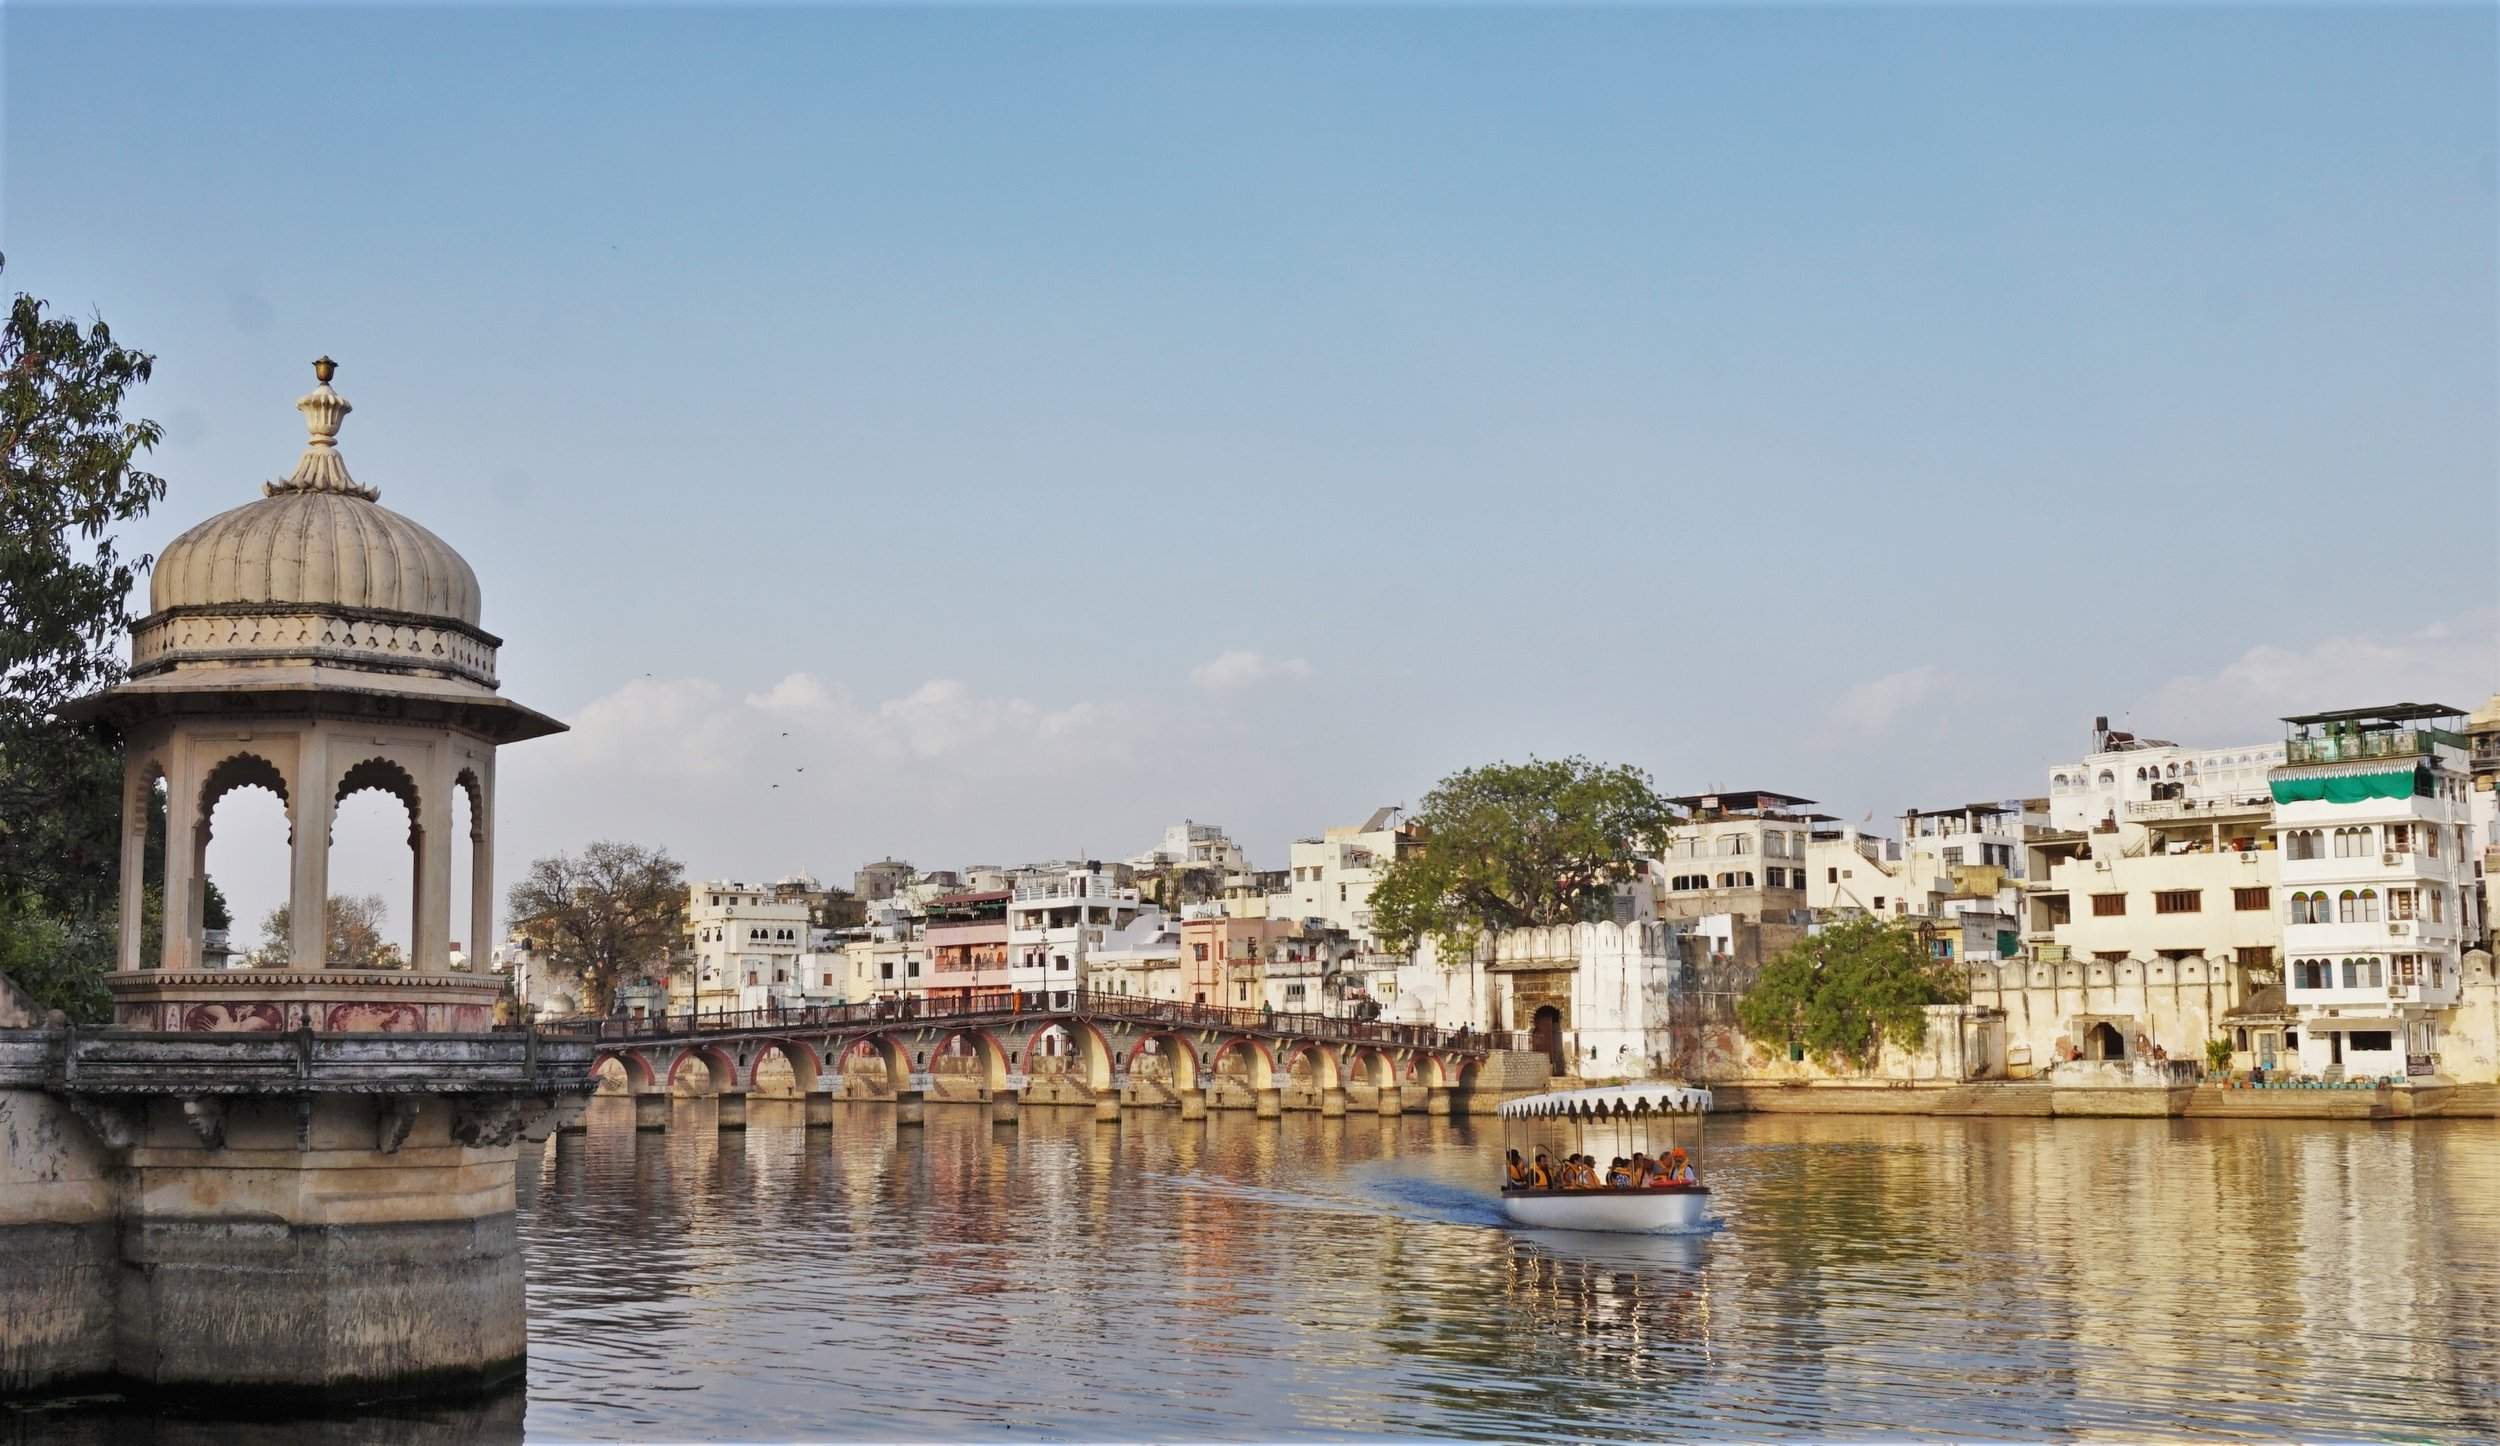 Udaipur or the Lake city is one of the most spectacular places in Rajasthan.